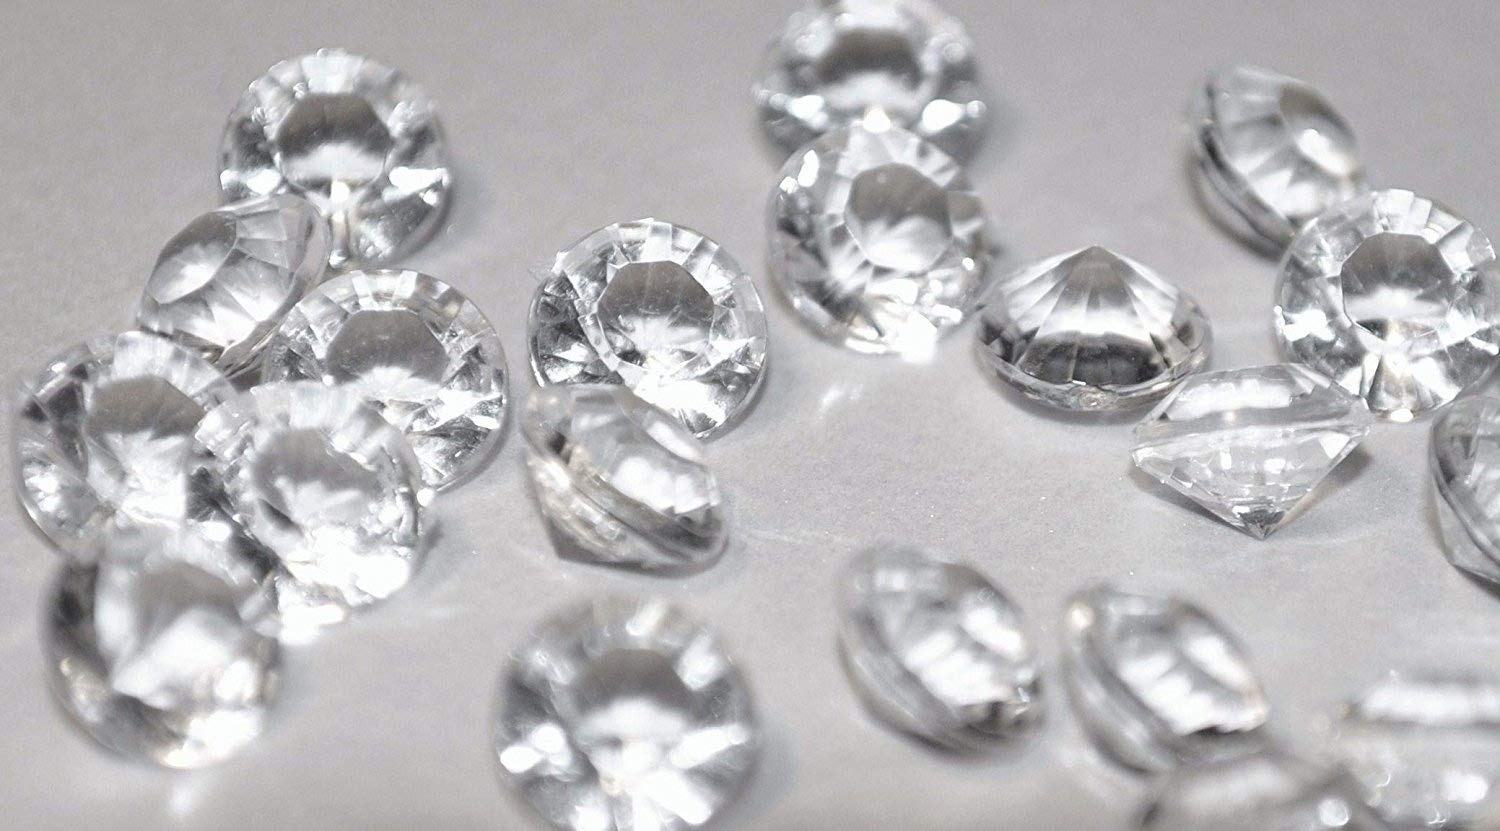 2000 4.5mm Clear Table Diamonds - 1/3 carat Scatter Crystals by The Occasion Store